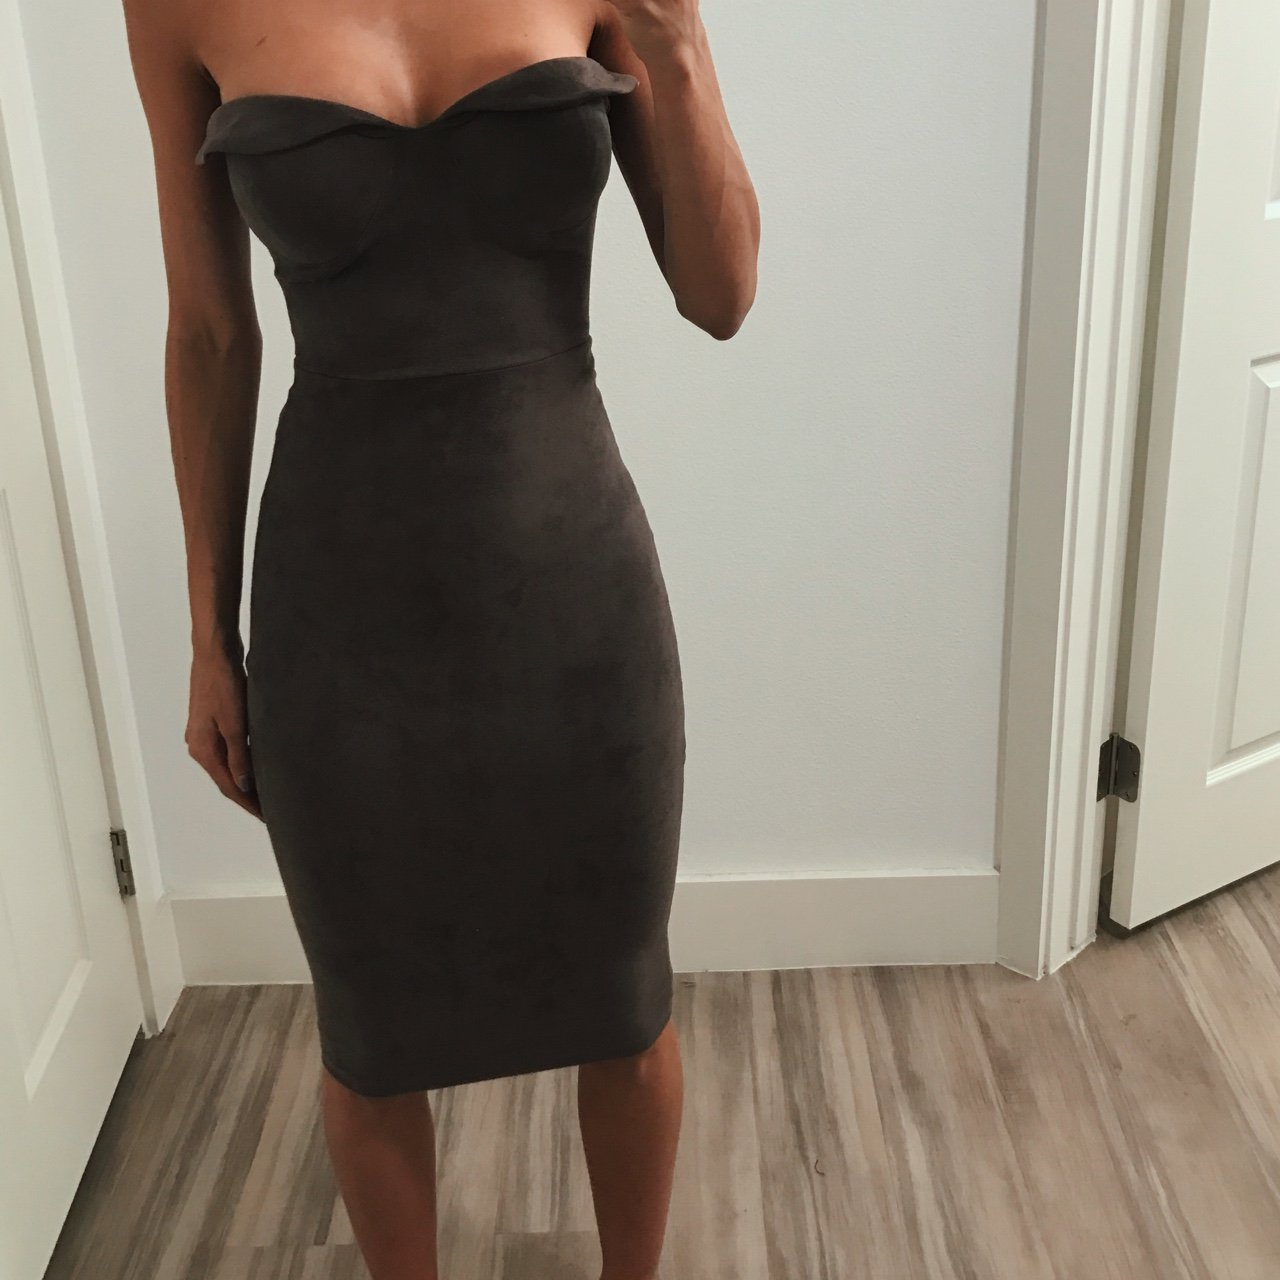 ffc52c2819 houseofcb taupe strapless dress worn once! Love the faux - Depop